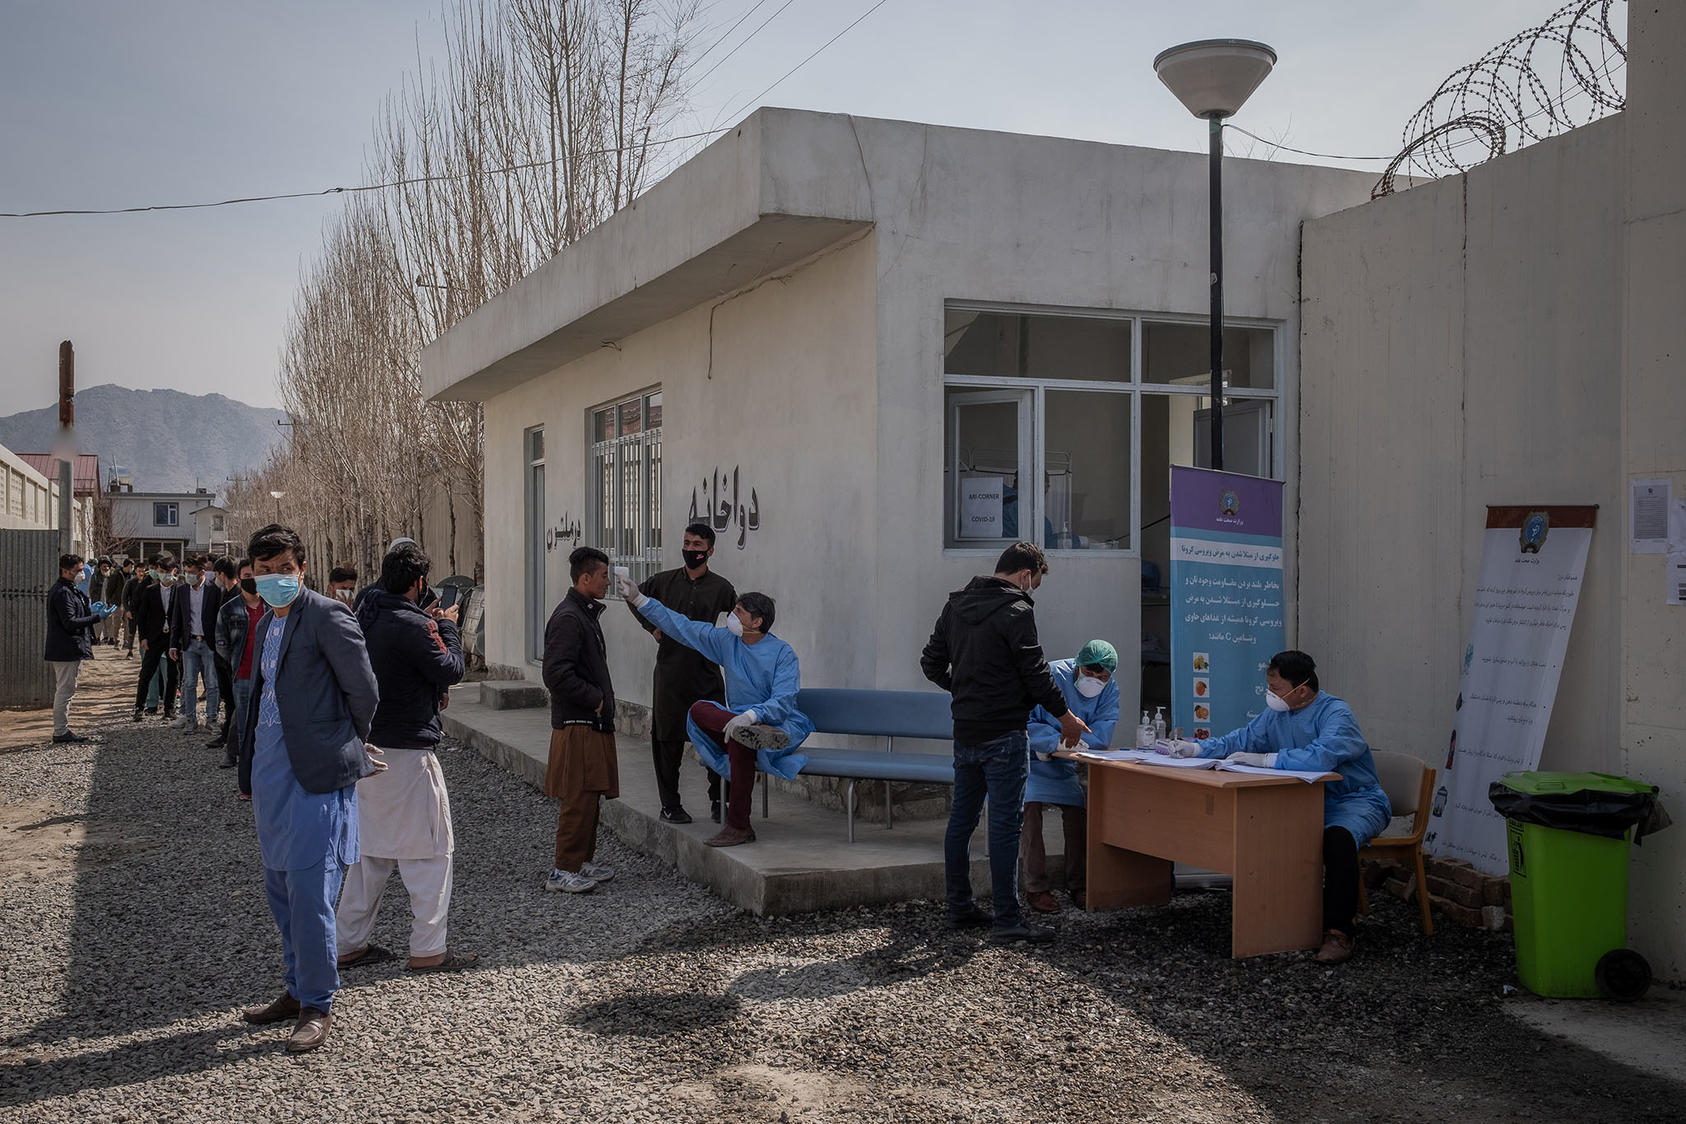 Men, most of whom had returned from Iran and were advised to self-isolate, are screened for the coronavirus outside a hospital in Kabul, Afghanistan, March 17, 2020. (Jim Huylebroek/The New York Times)